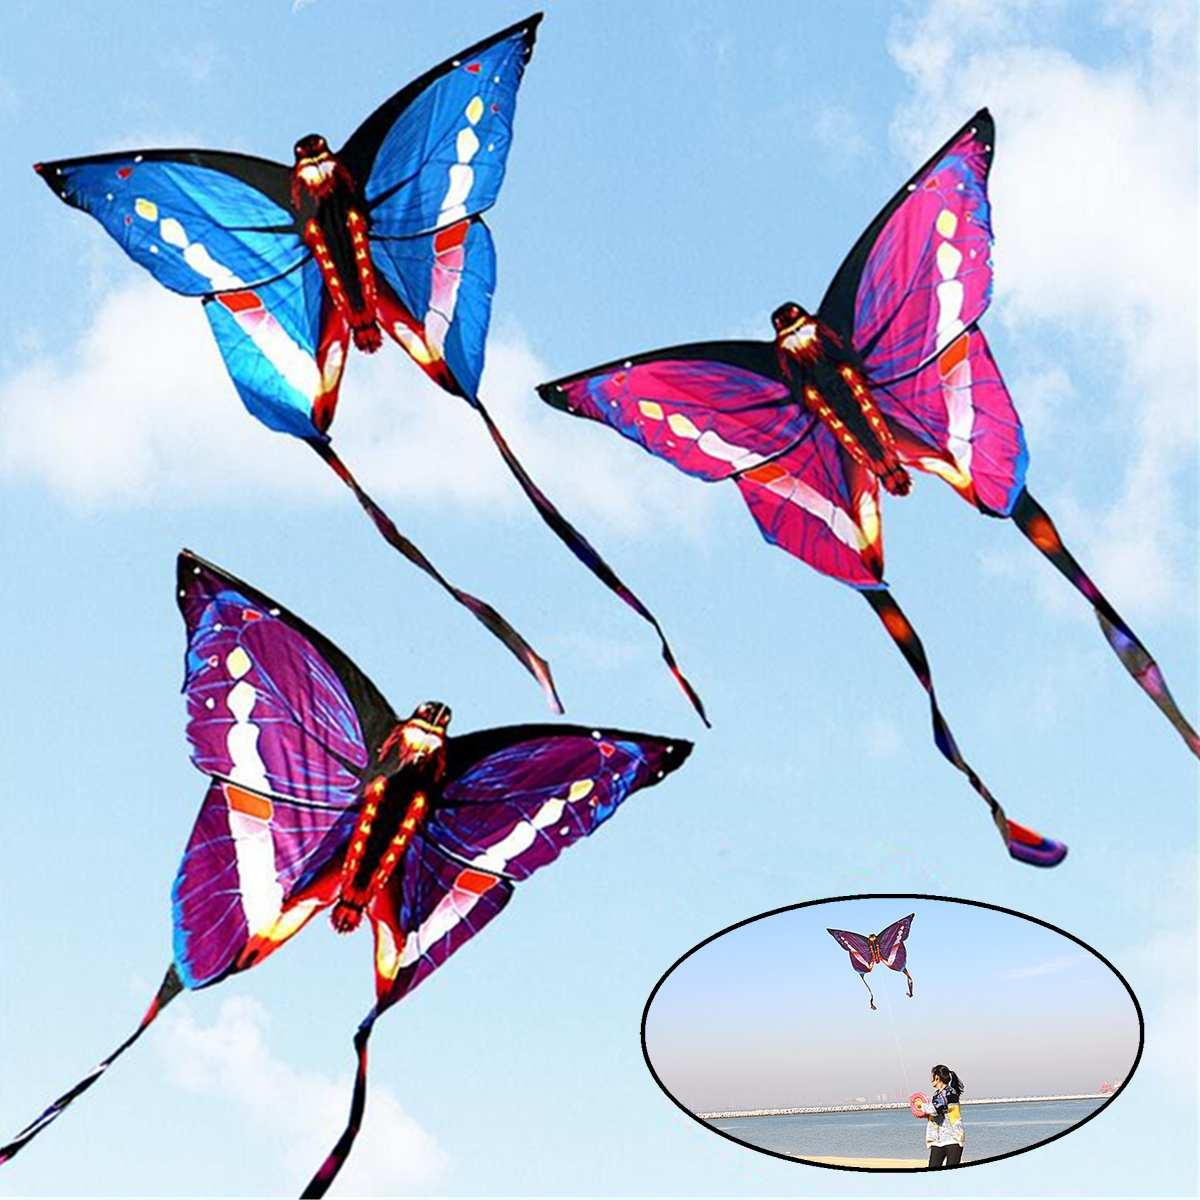 bd038dcecd7dae 2019 Large Beautiful Butterfly Kite Children Kids Toy Outdoor Sports  Butterfly Flying Kite With String Tail Game Sport Gift For Boy From  Windbaby